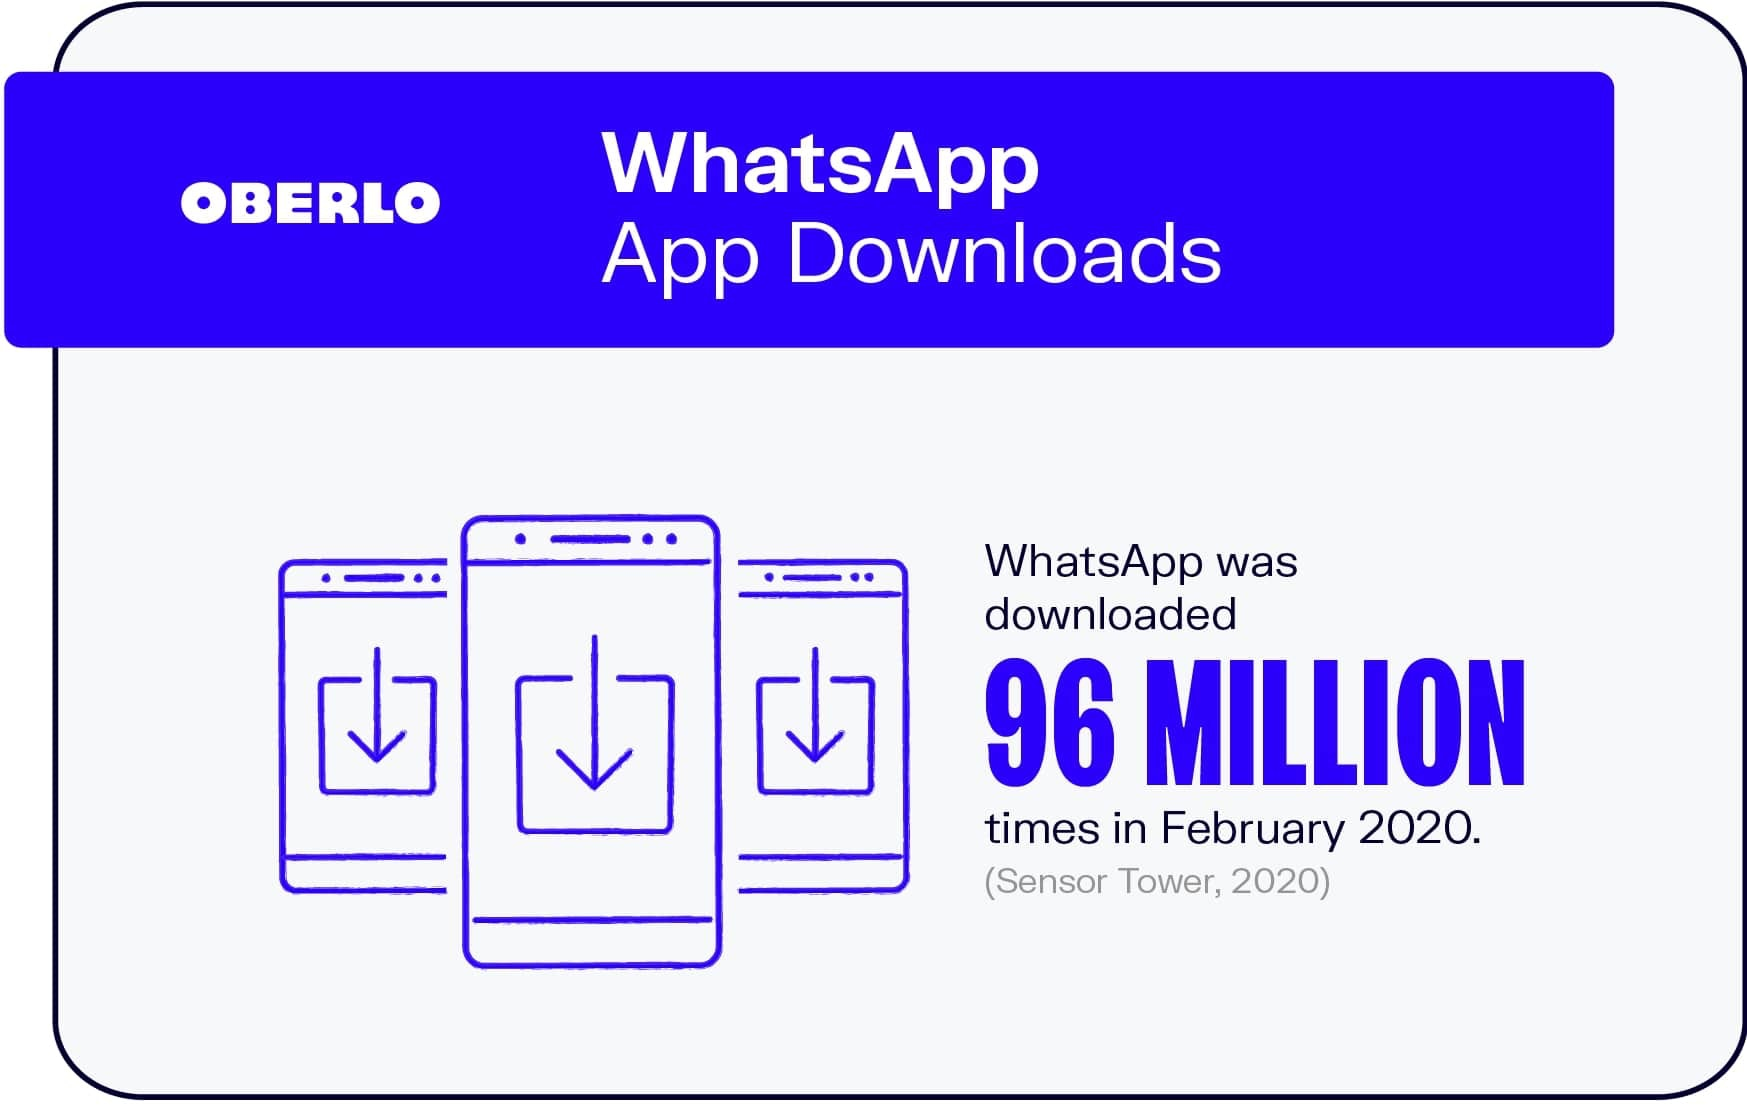 WhatsApp App Downloads